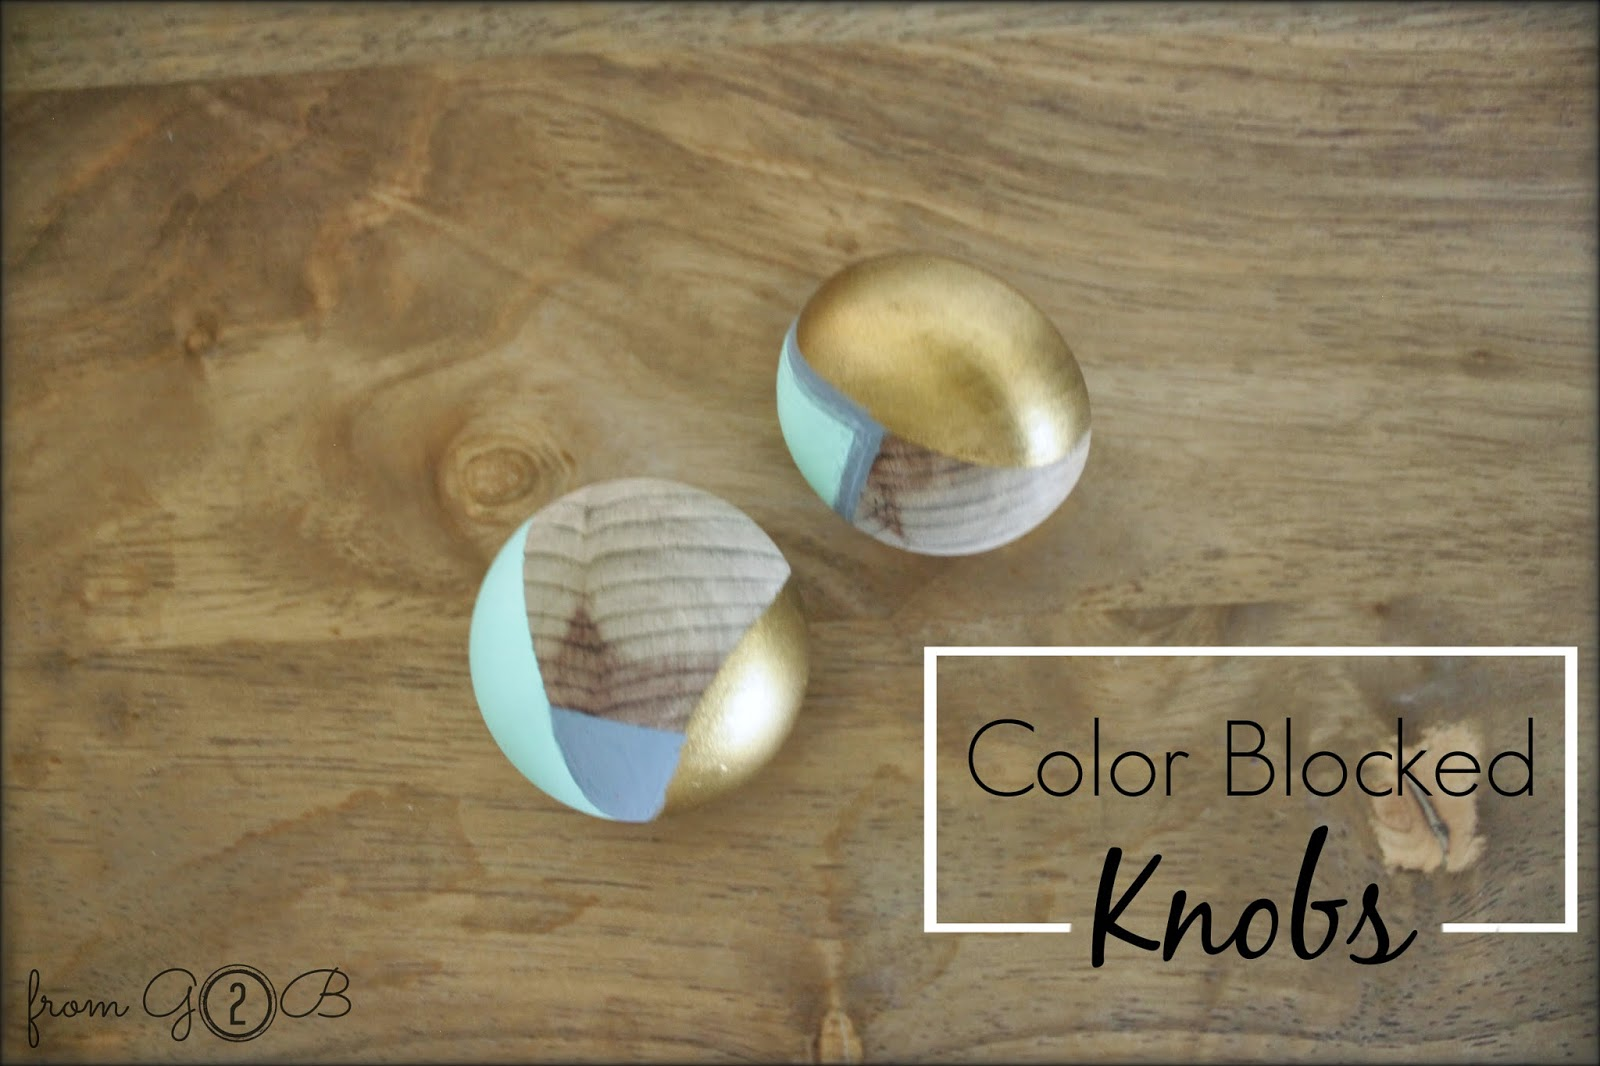 Color Blocked Wooden Knobs via fg2b